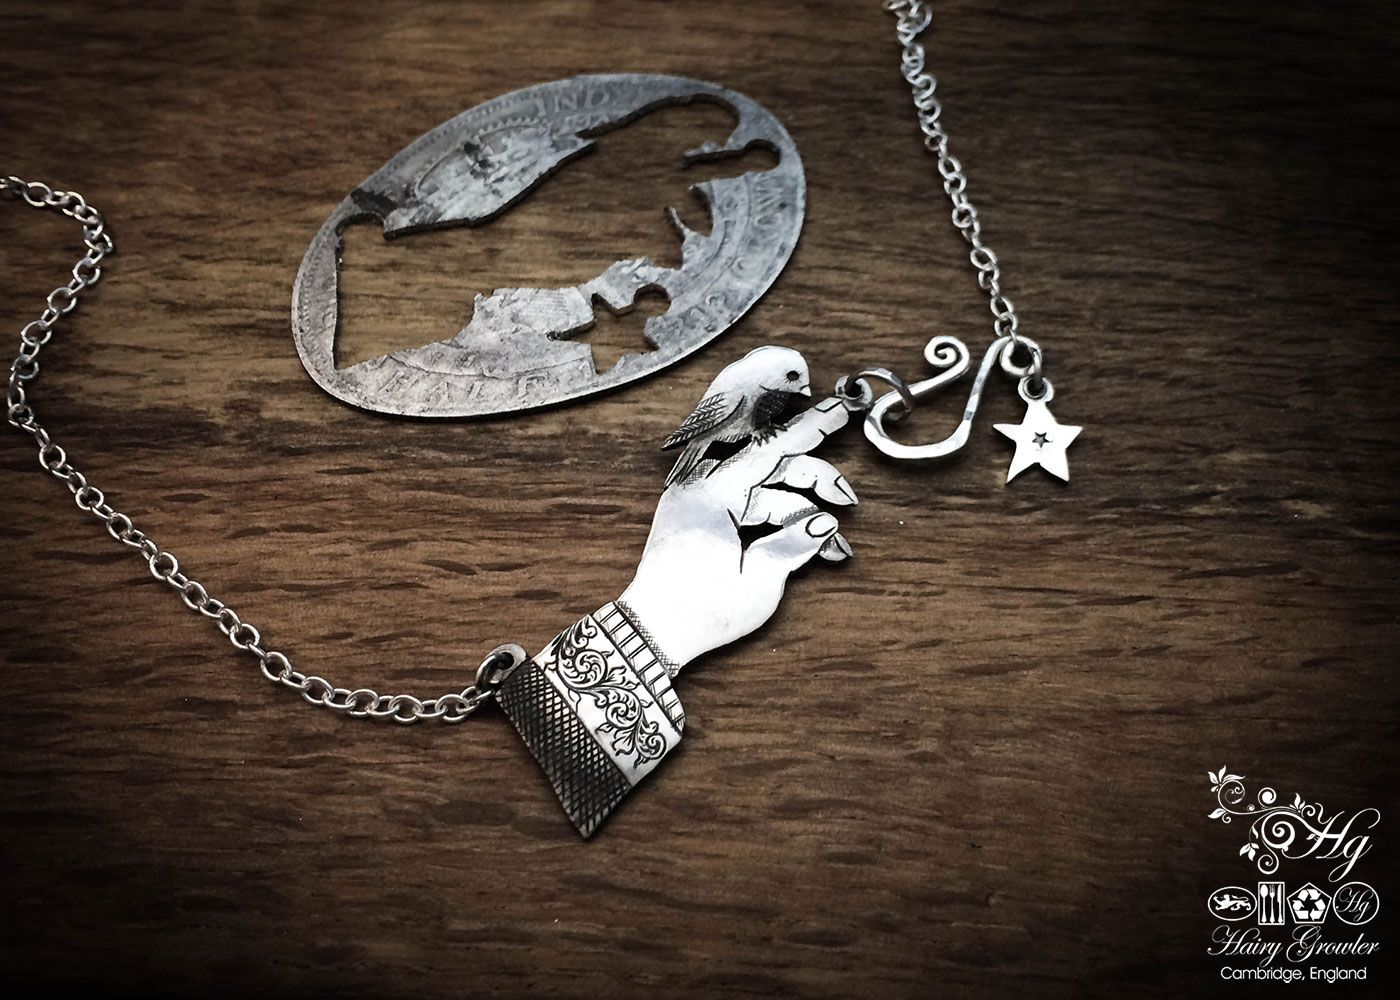 Handcrafted and recycled sterling silver 'Meet my little bird friend' necklace